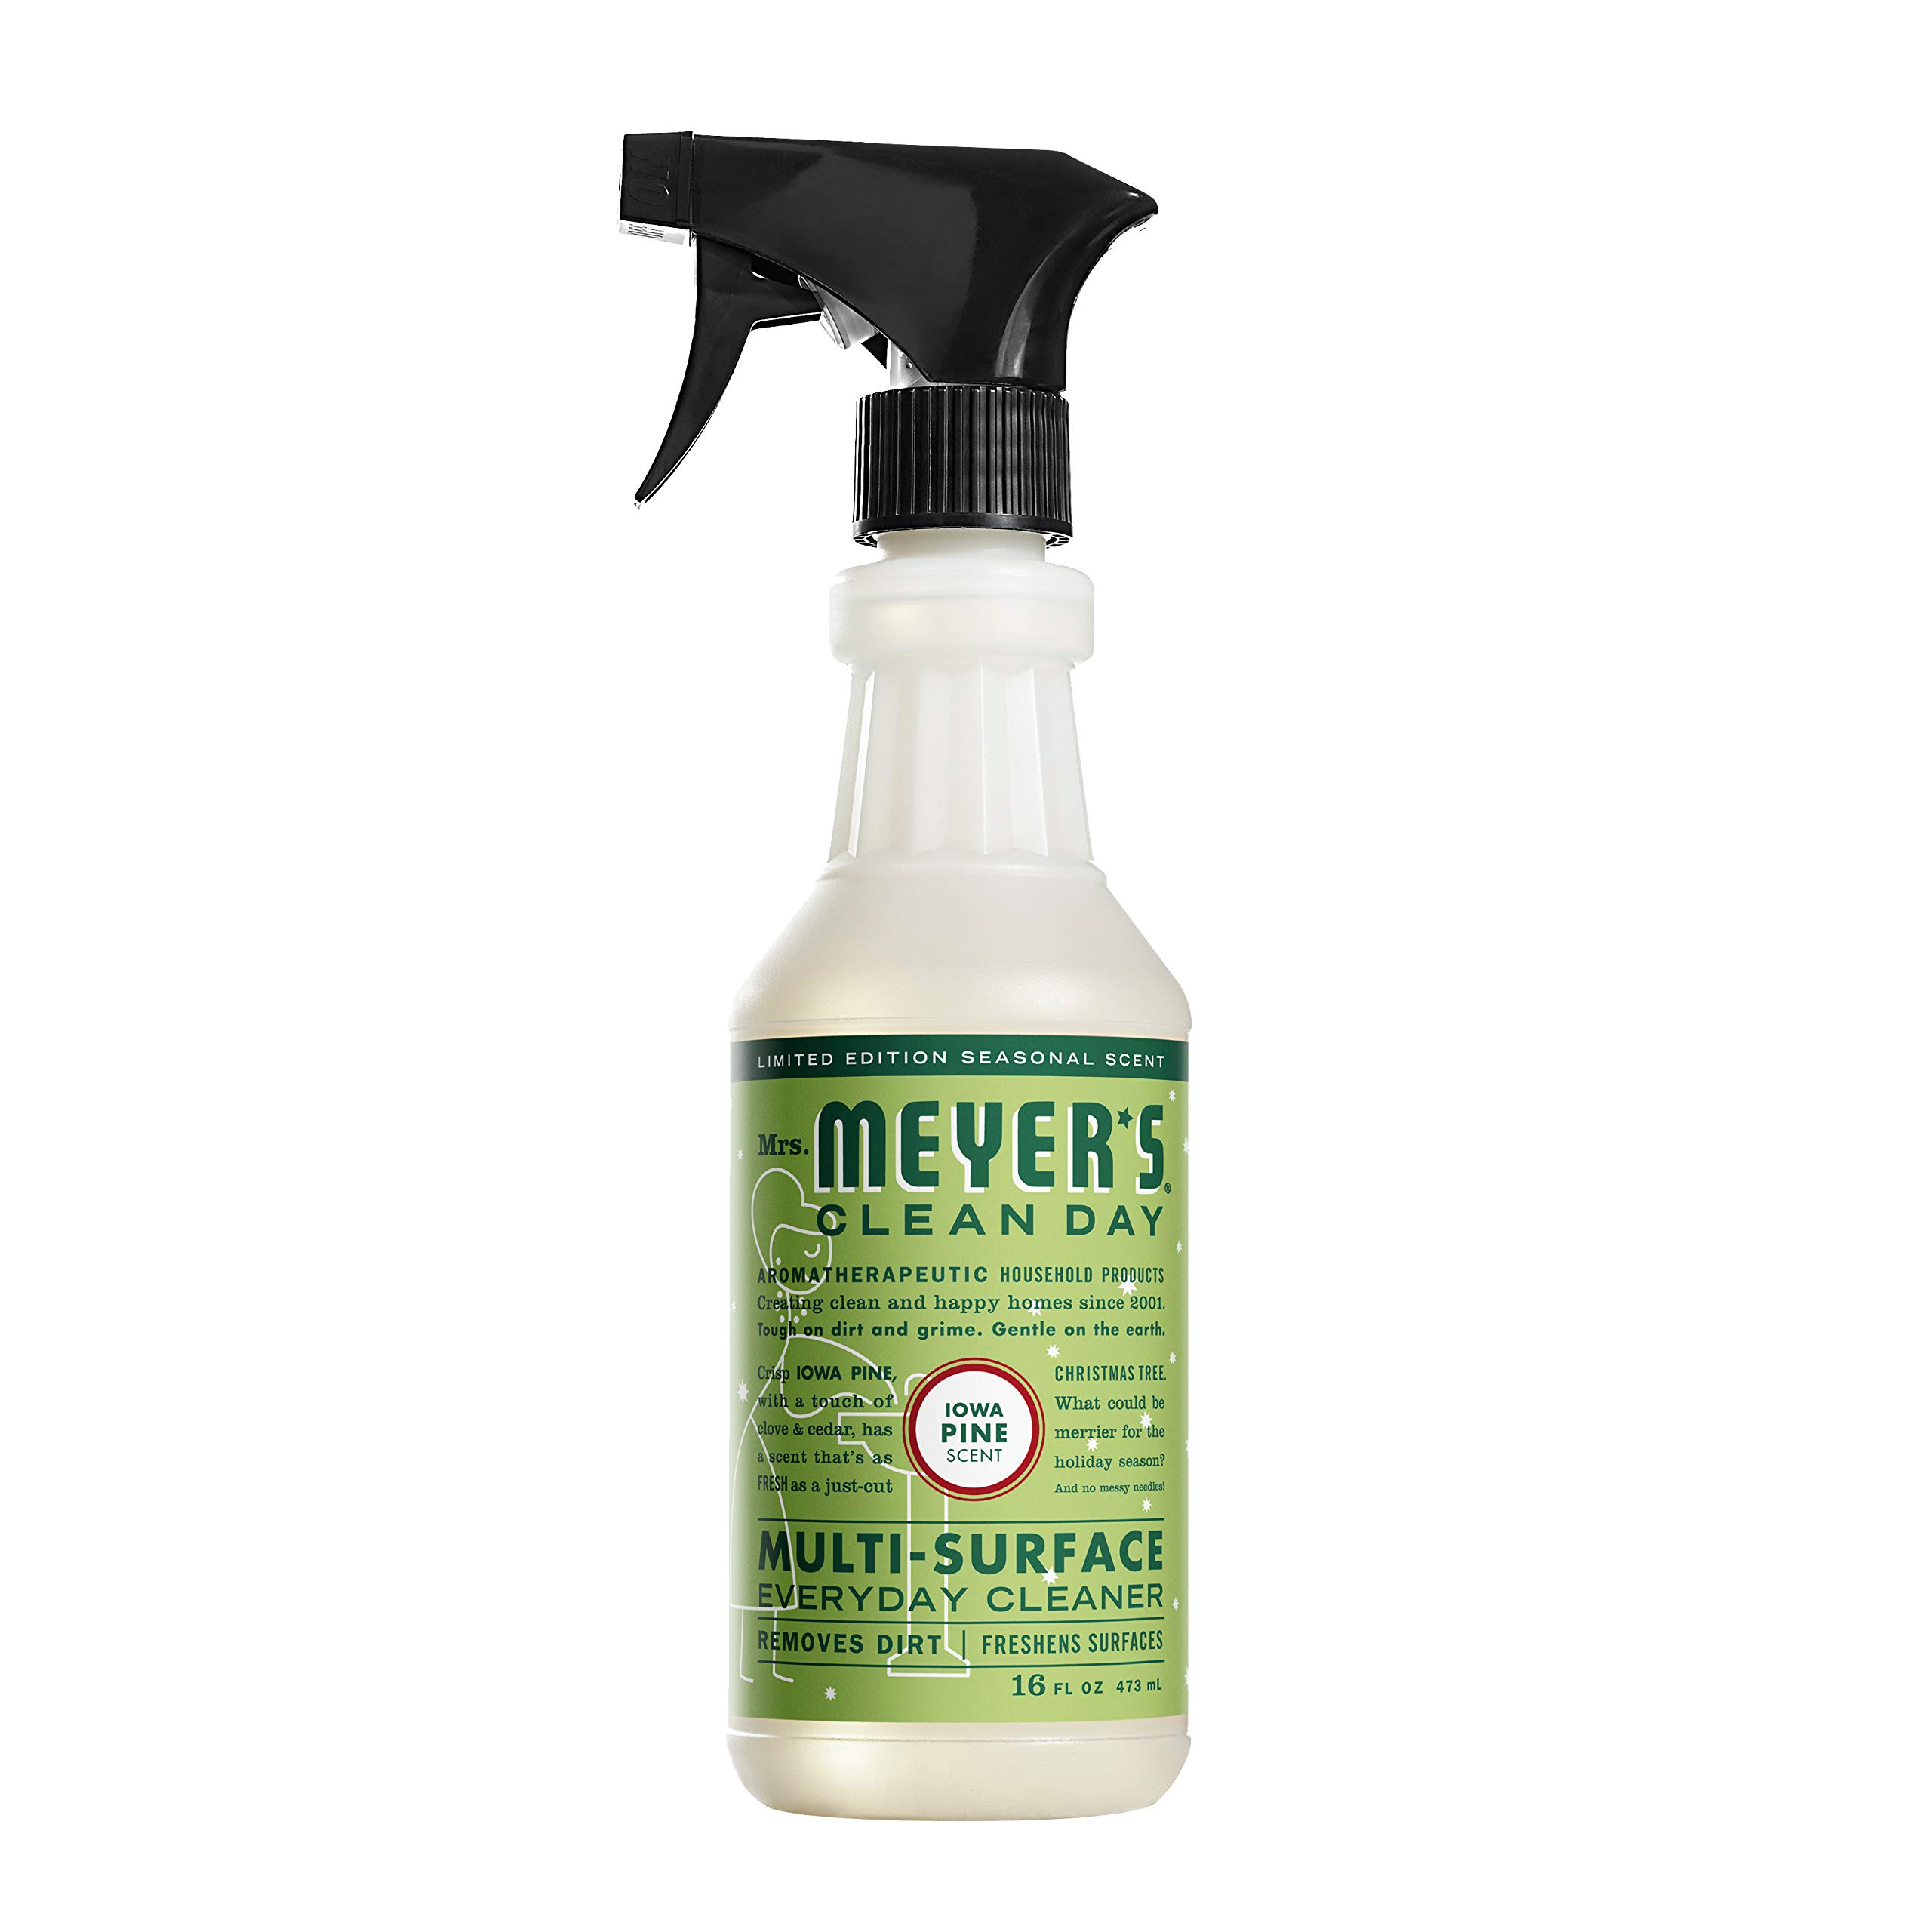 Mrs. Meyer's Merge Multi-Surface Everyday Cleaner, Iowa Pine, 16 Ounce